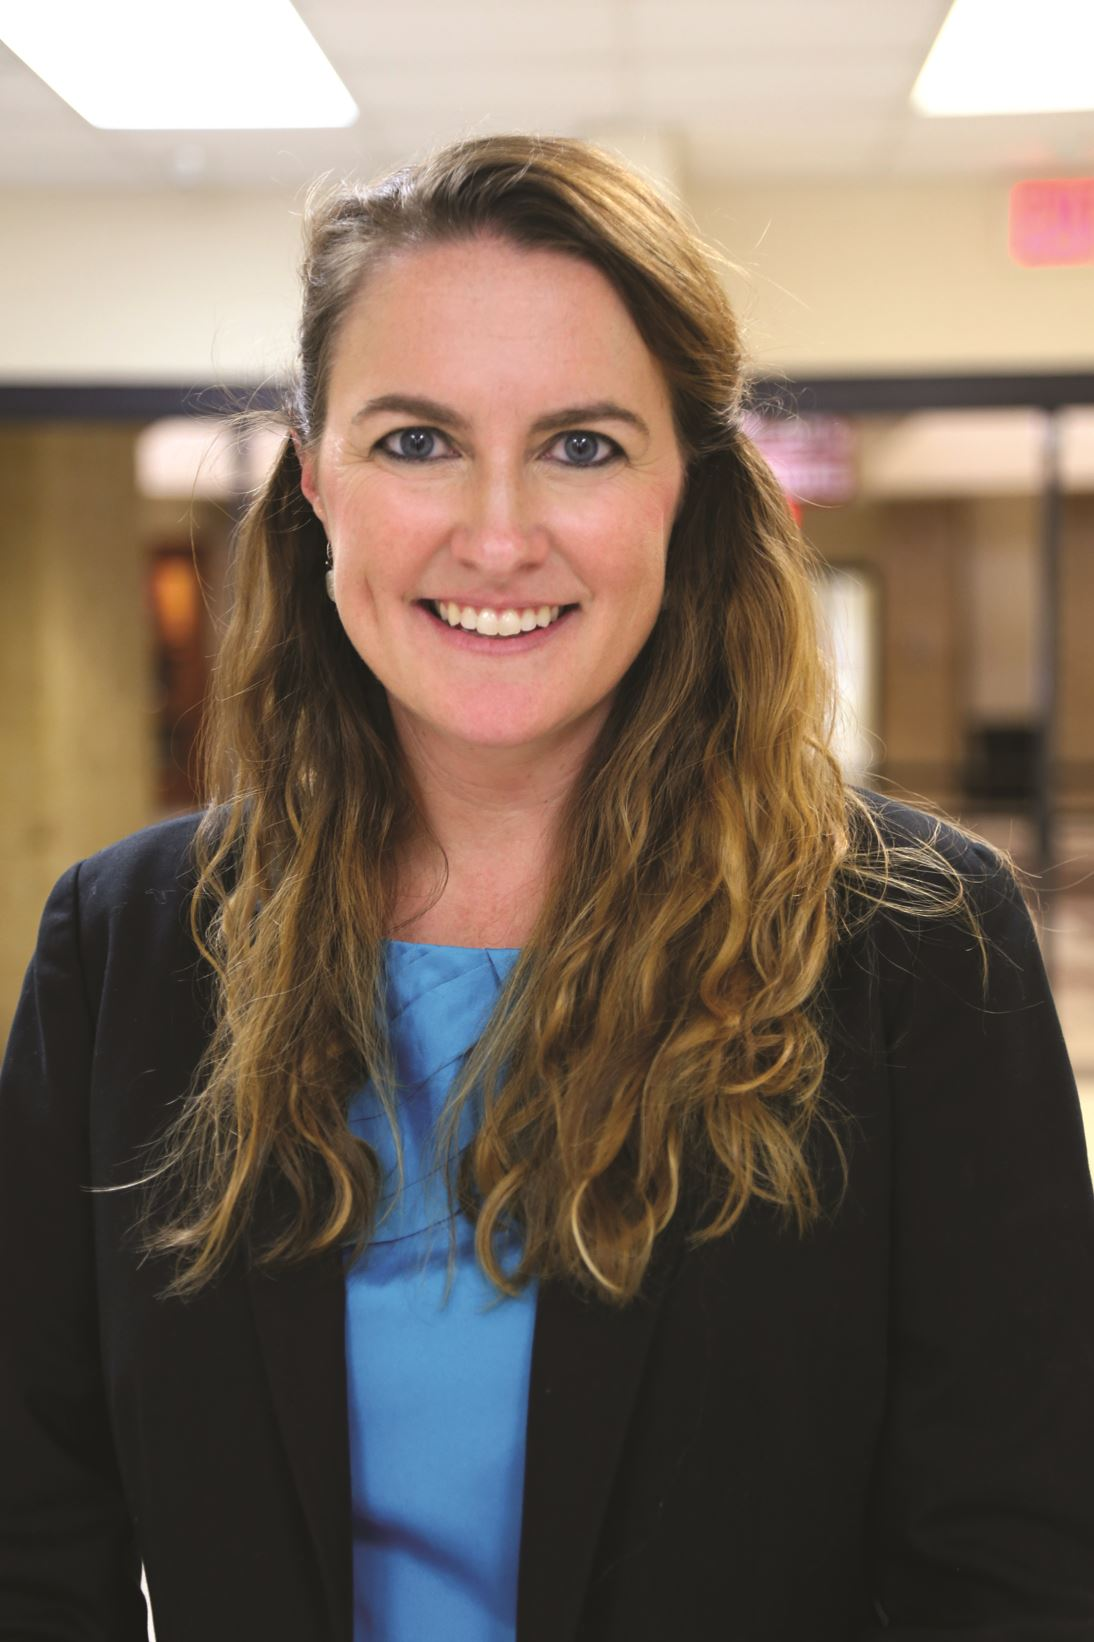 Image of Ashley Dorsey, Principal.